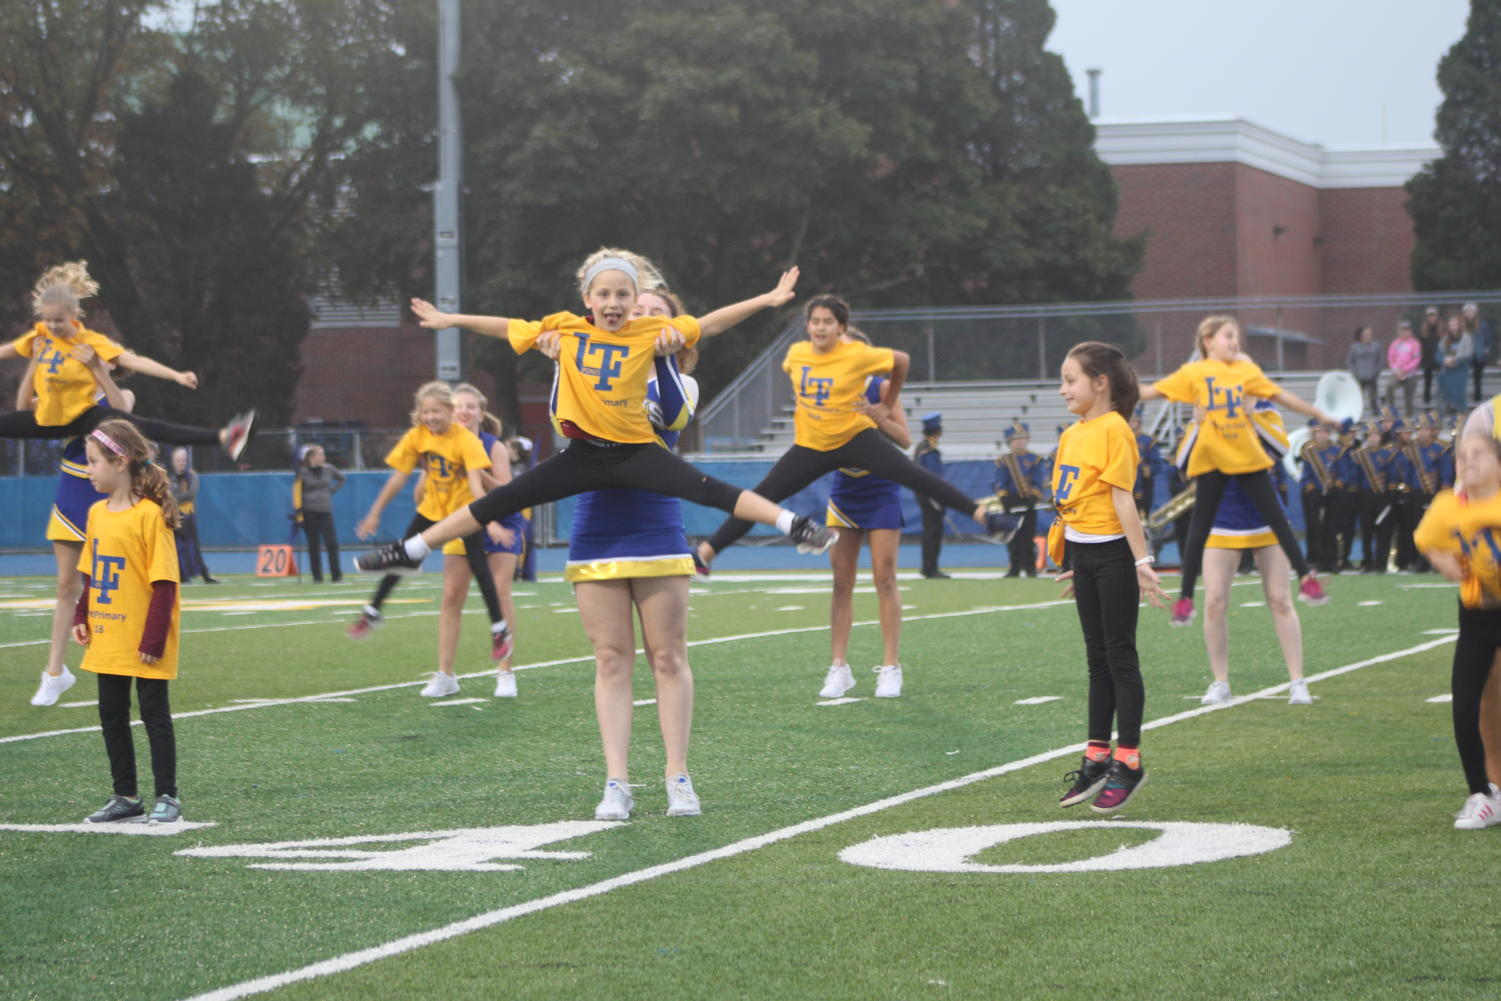 The LT Poms team performs with their younger partners (Sorice/LION).